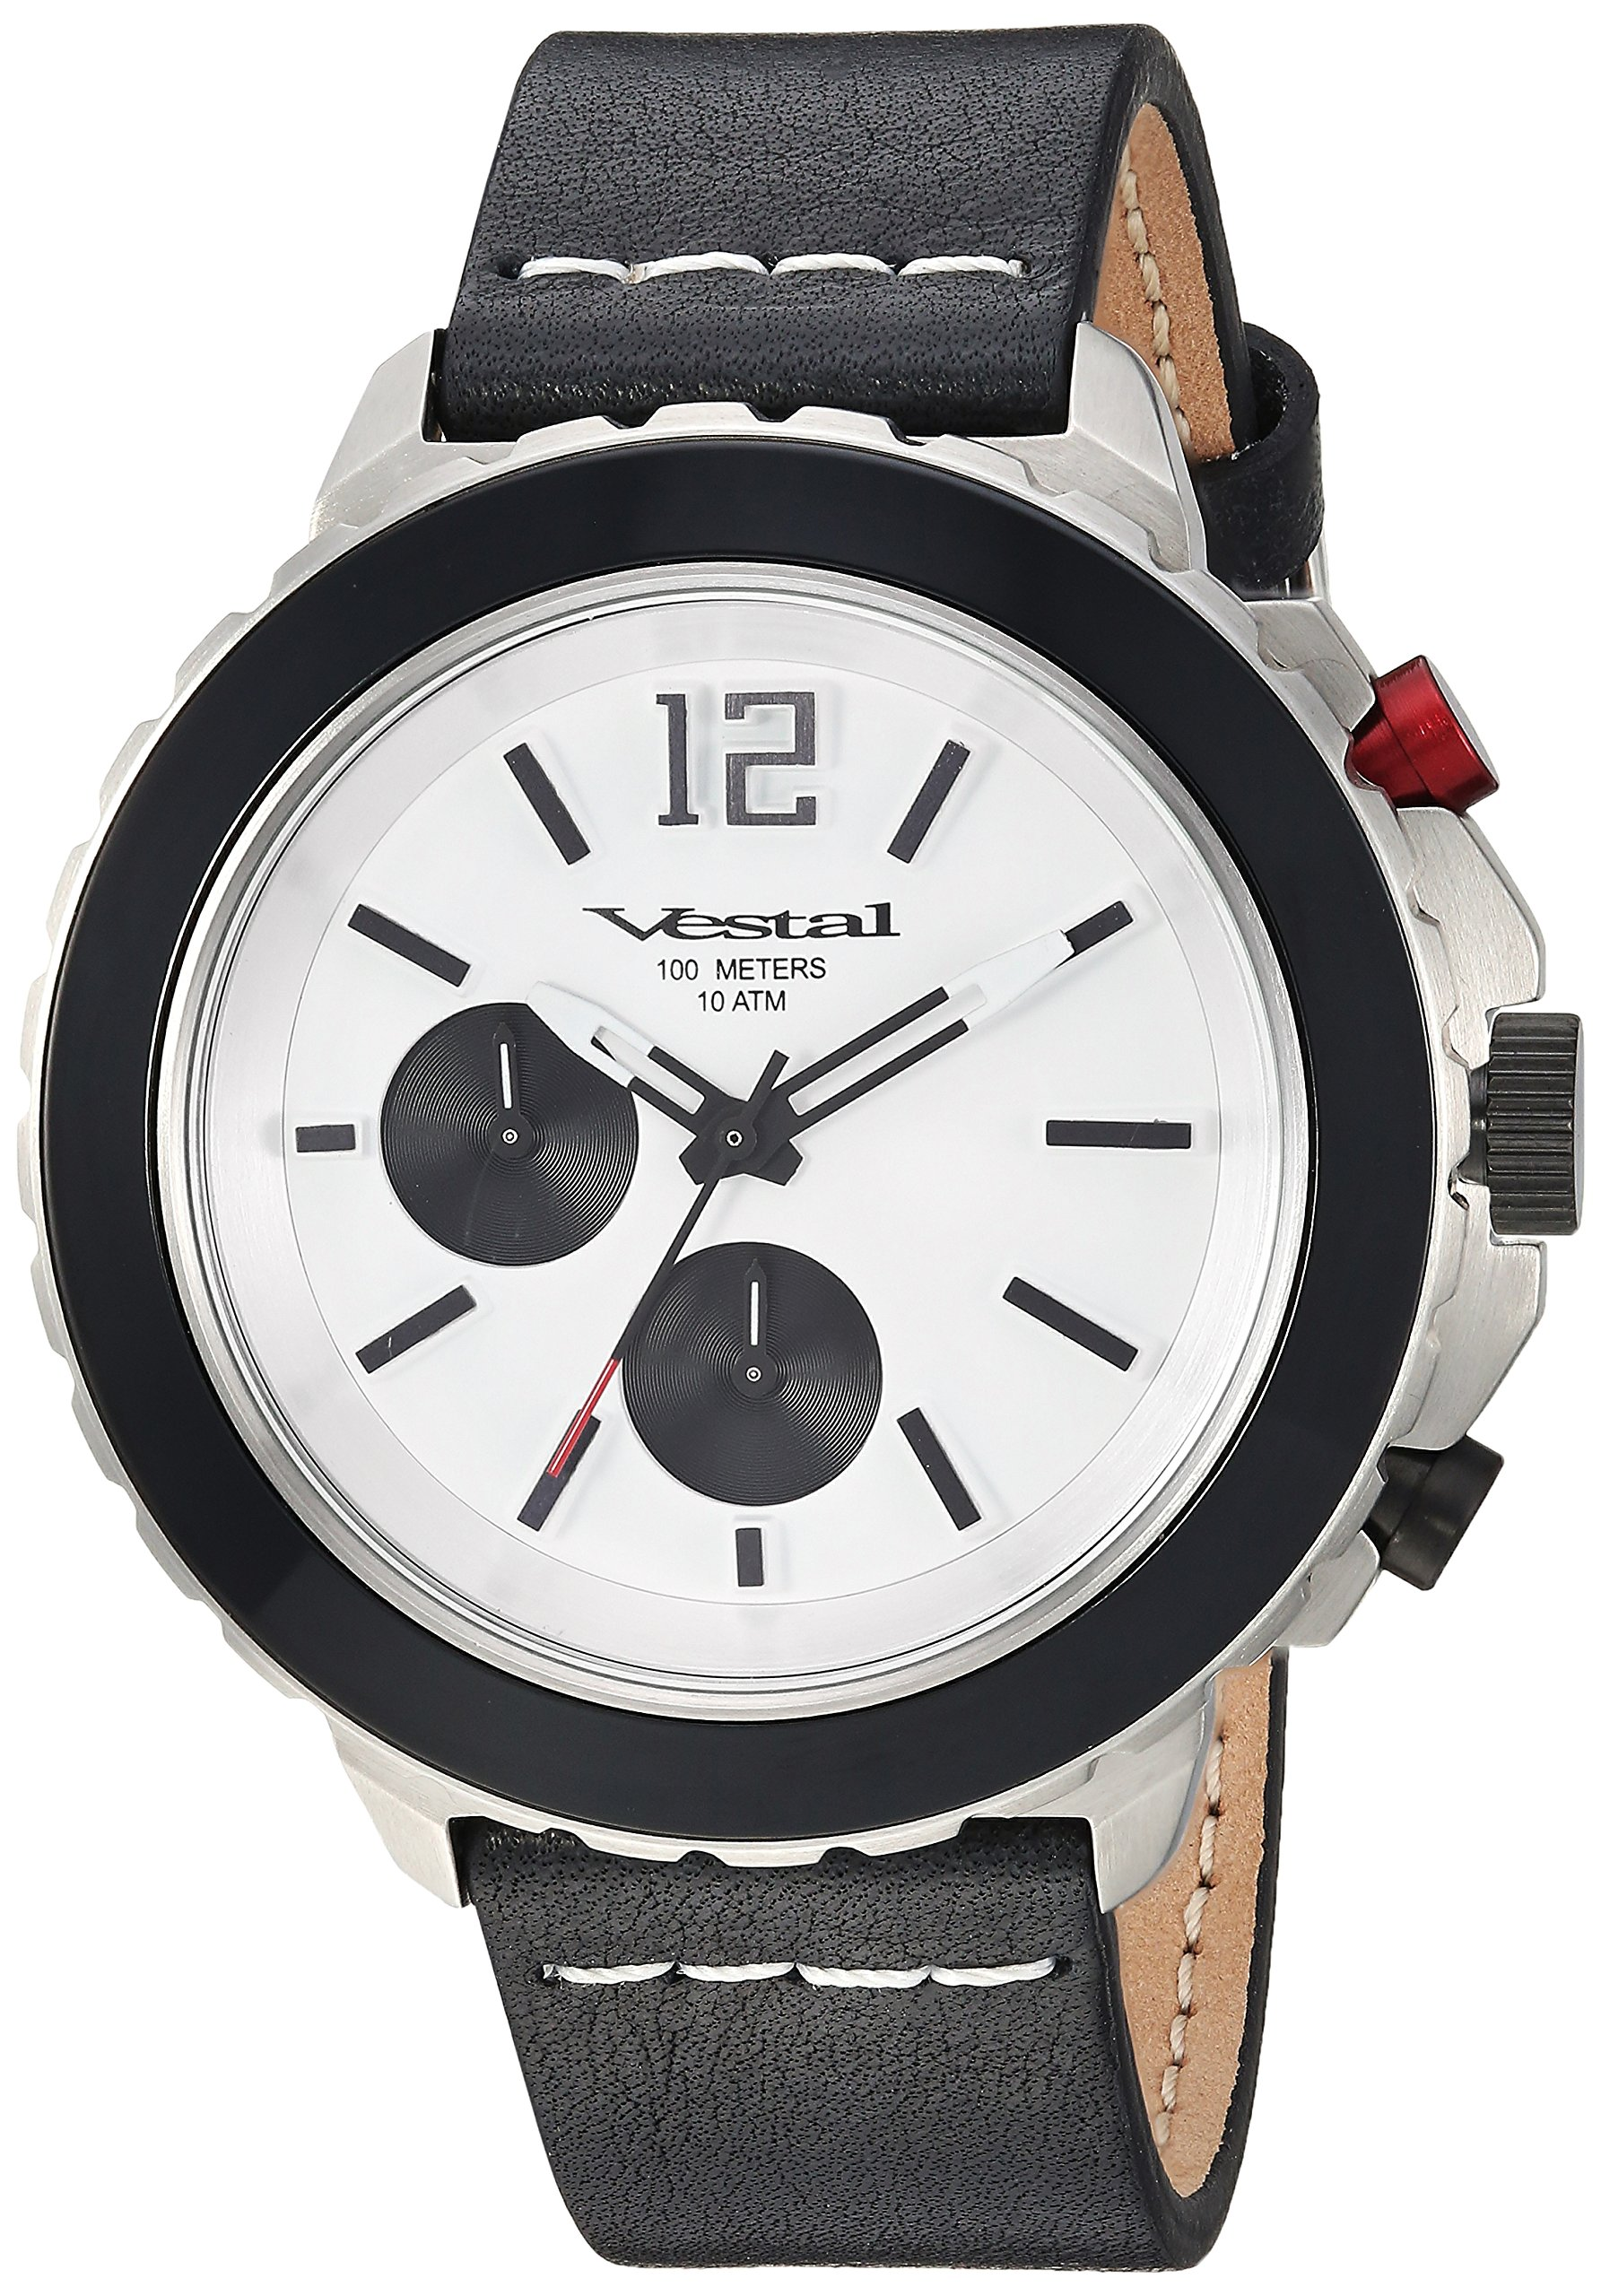 Vestal Yacht Stainless Steel Japanese-Quartz Watch with Leather Strap, Black, 20 (Model: YAT44CL02.BKWH)